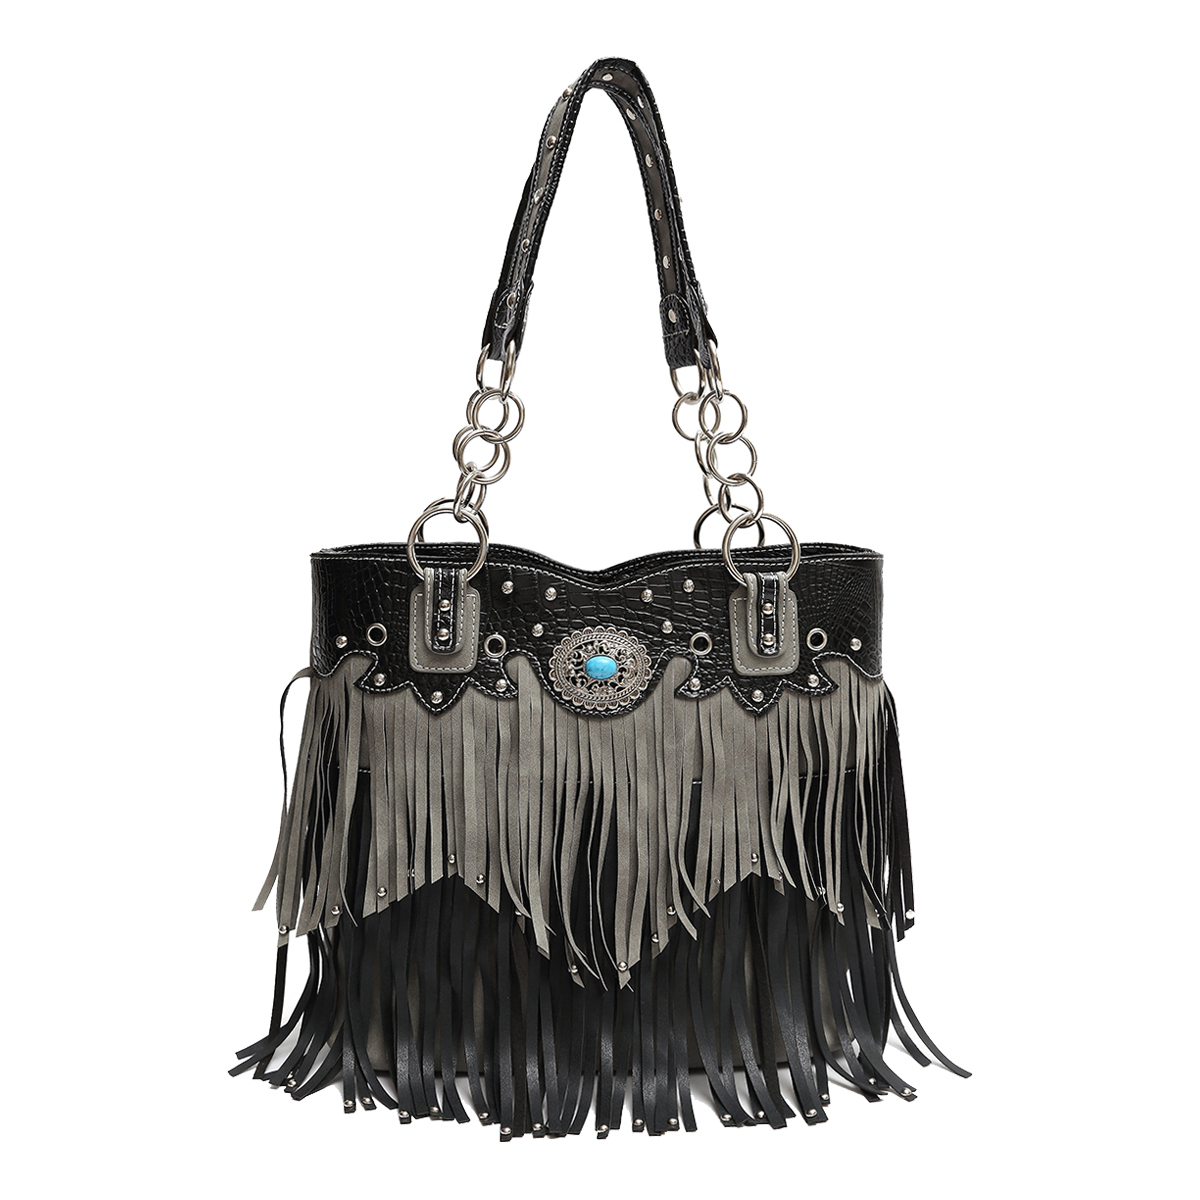 'Cowgirl Trendy' Fringe Bucket Bag Black